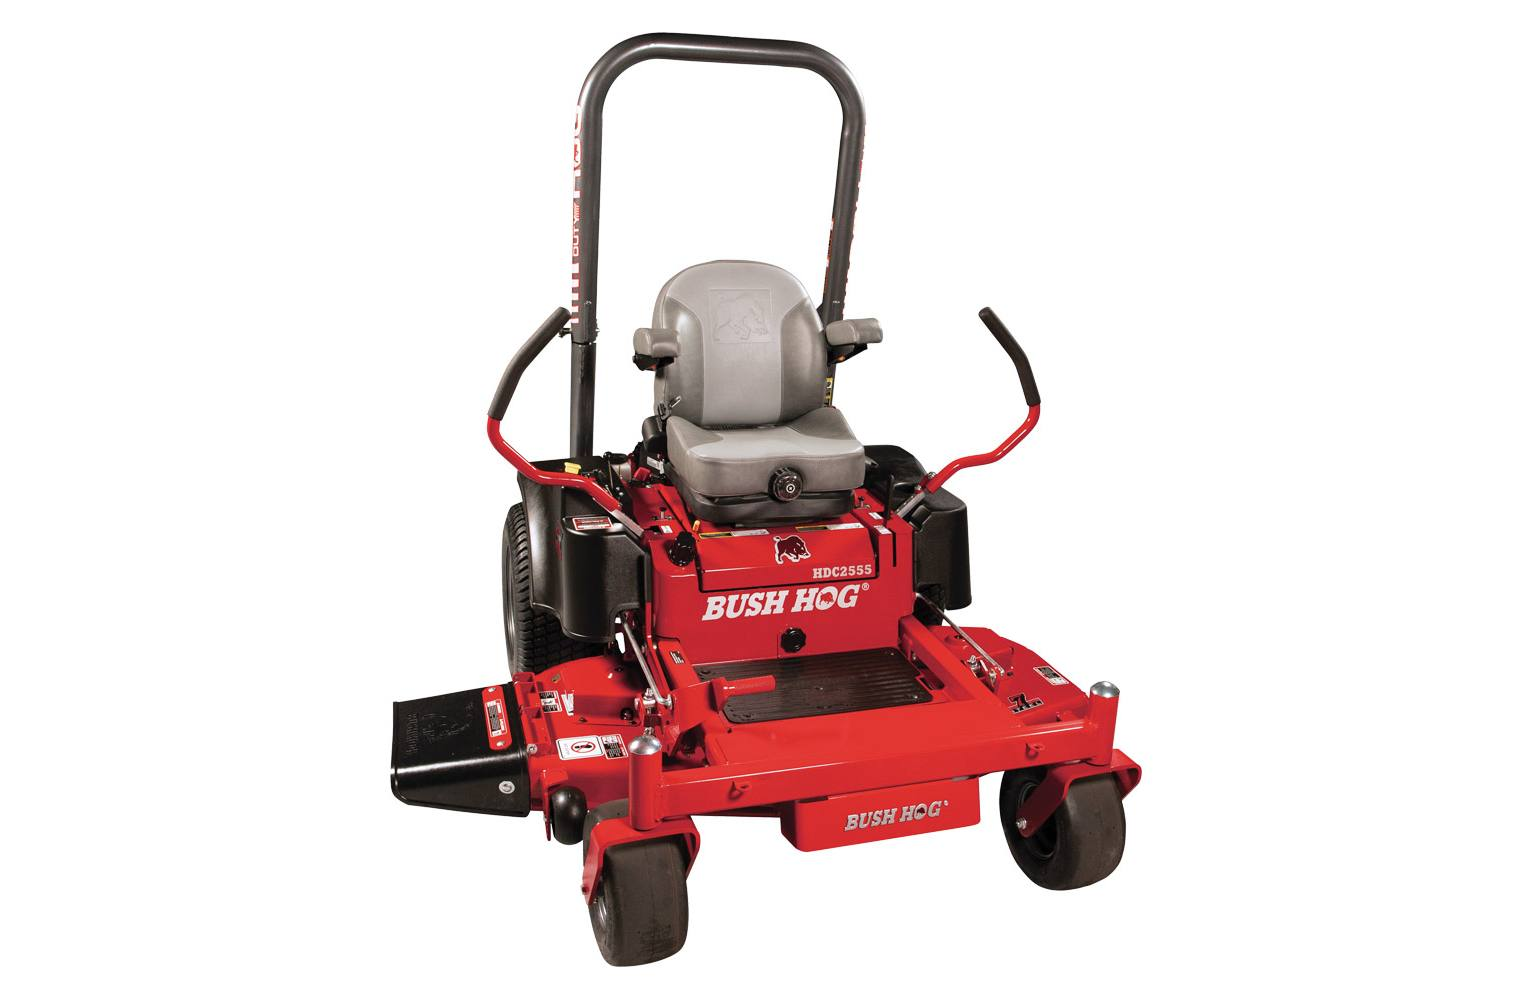 New Bush Hog Models For Sale In Hudson Falls Ny Farm And Wire Harness Hdc 2 Series Zt Mower